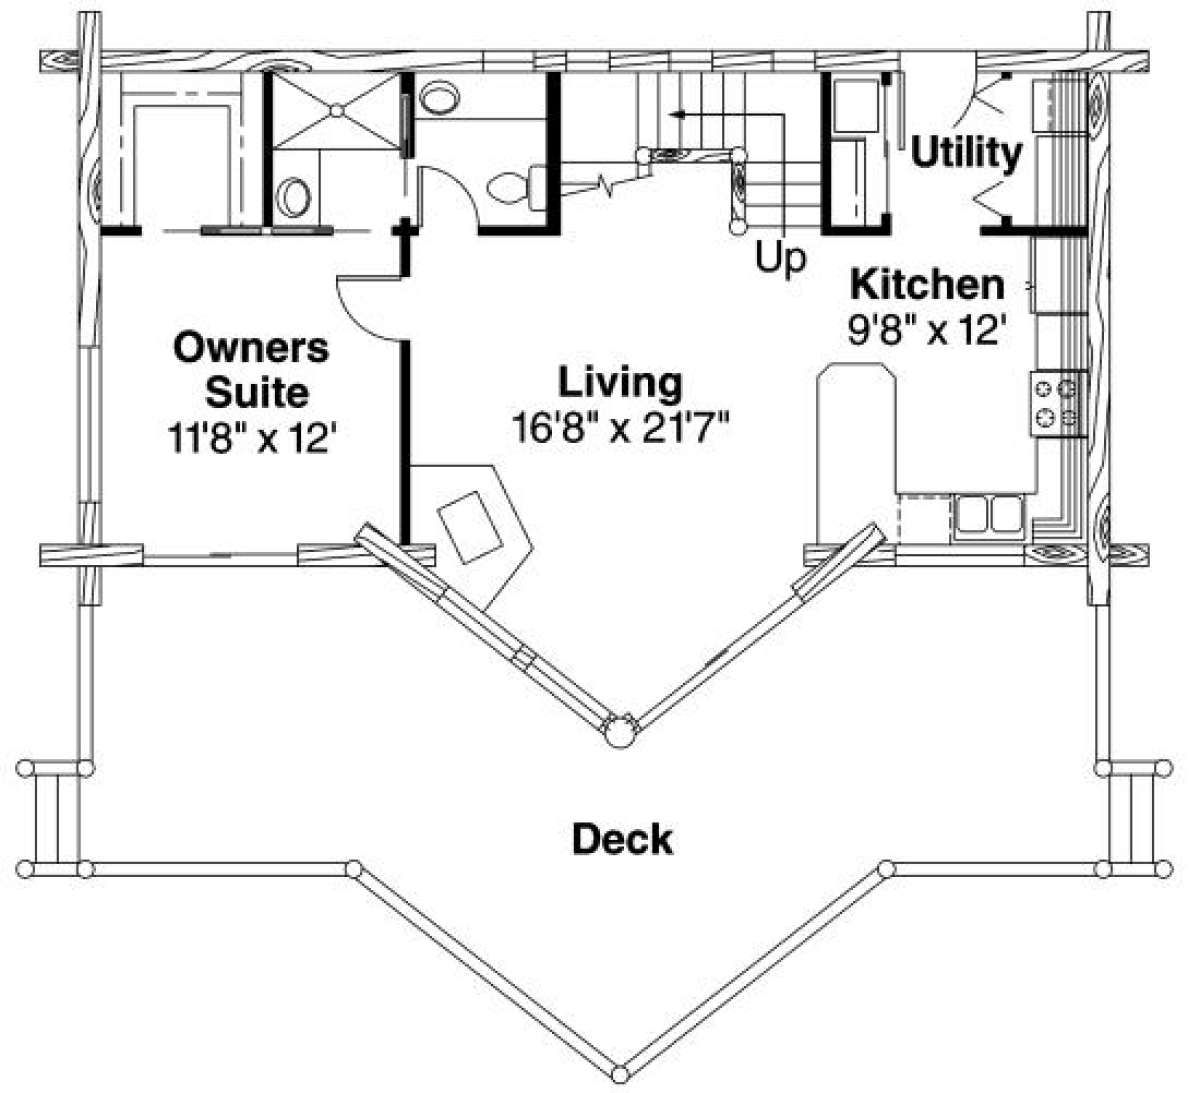 House Plan 035 00142 Cabin Plan 1 216 Square Feet 2 Bedrooms 2 Bathrooms In 2020 Cabin Plans Log Cabin House Plans Log Cabin Plans